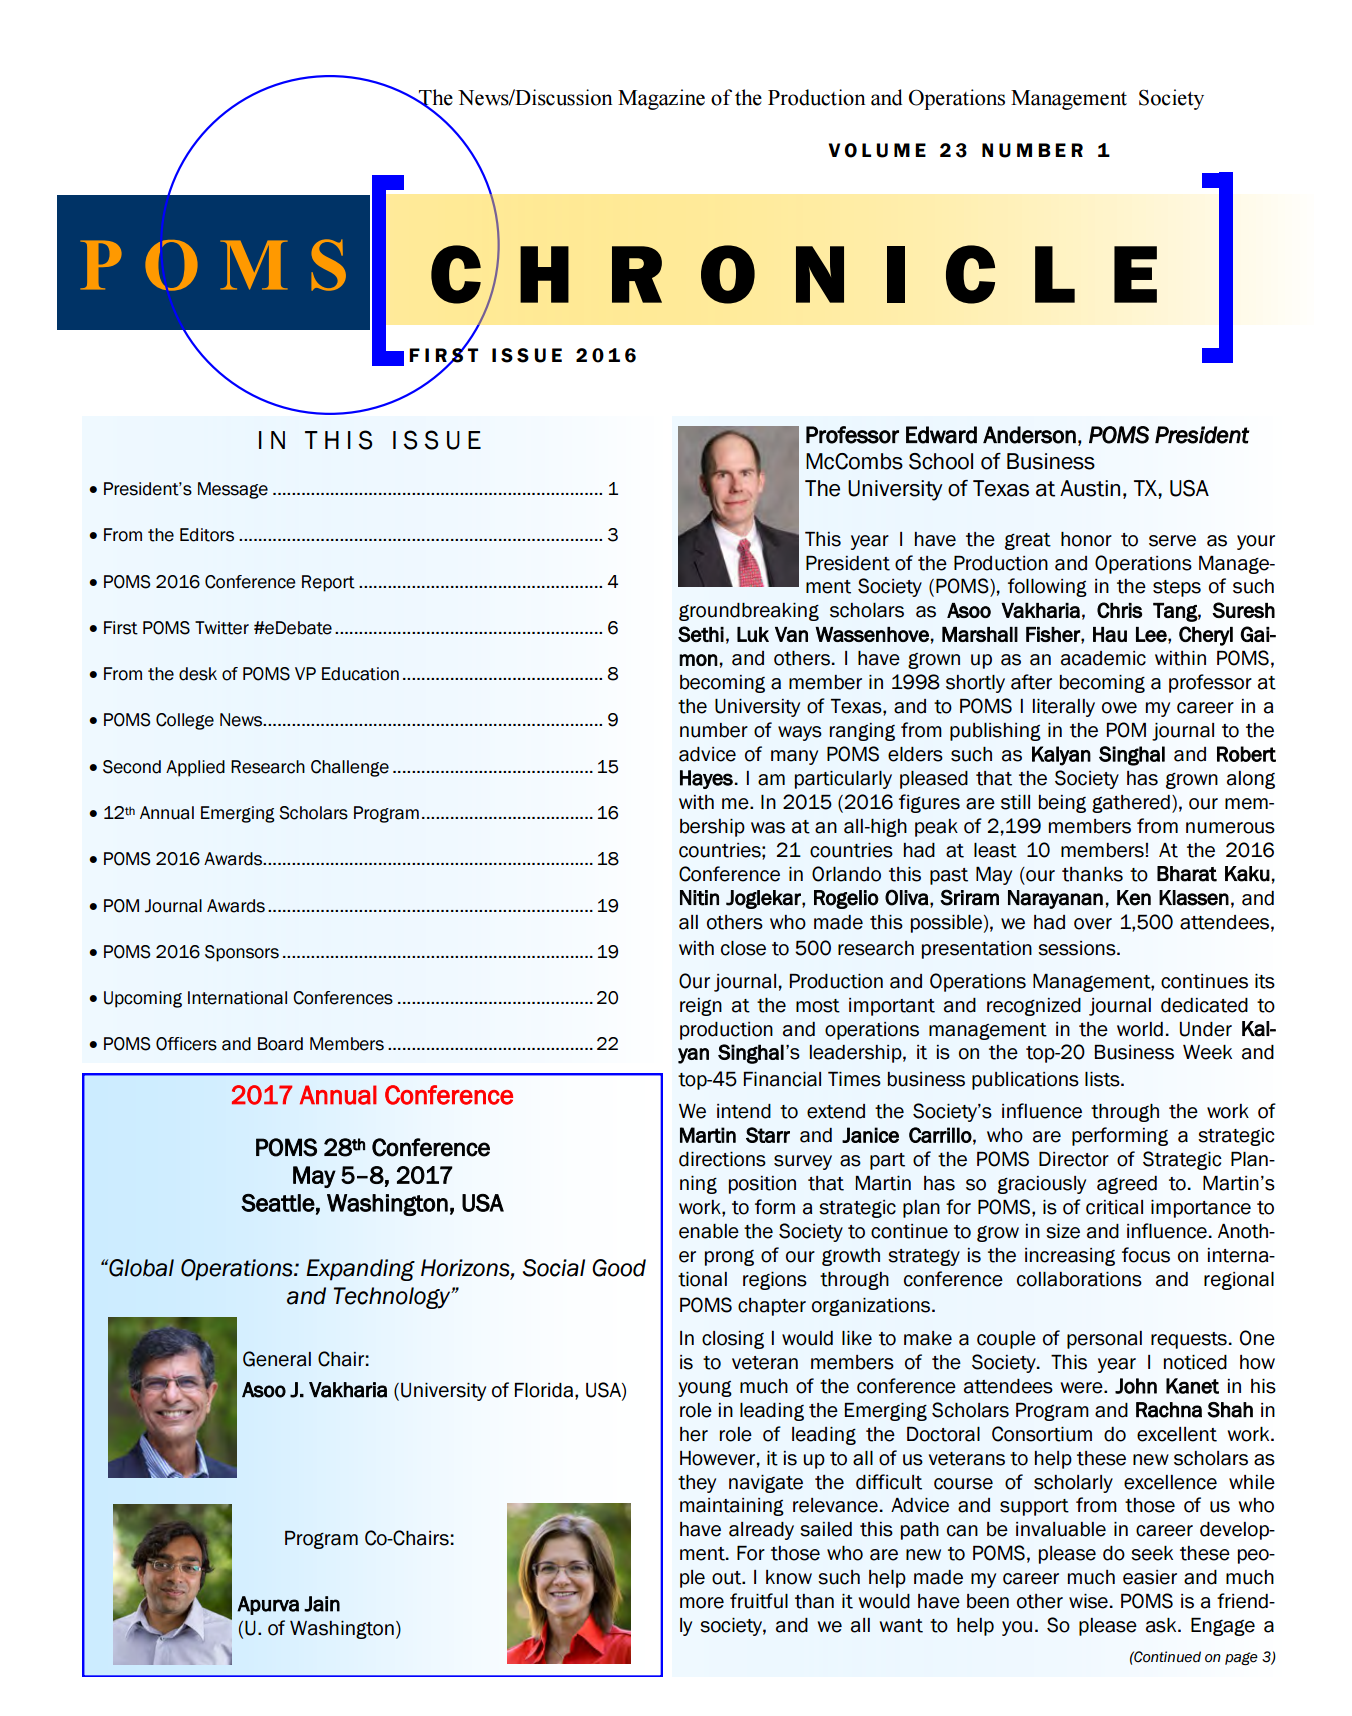 POMS Chronicle Vol 23 No 1.pdf.png